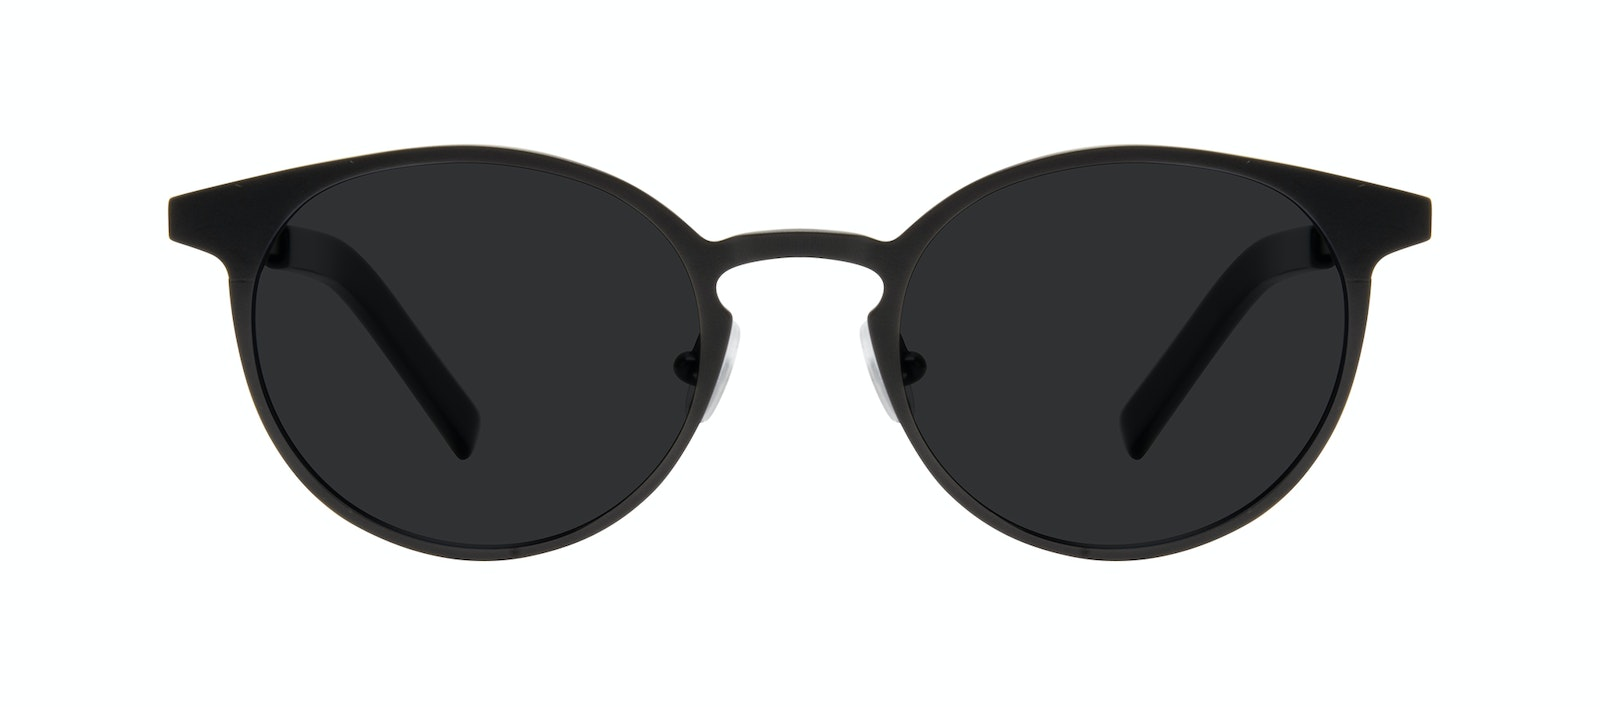 Affordable Fashion Glasses Round Sunglasses Men Cut Onyx Matte Front